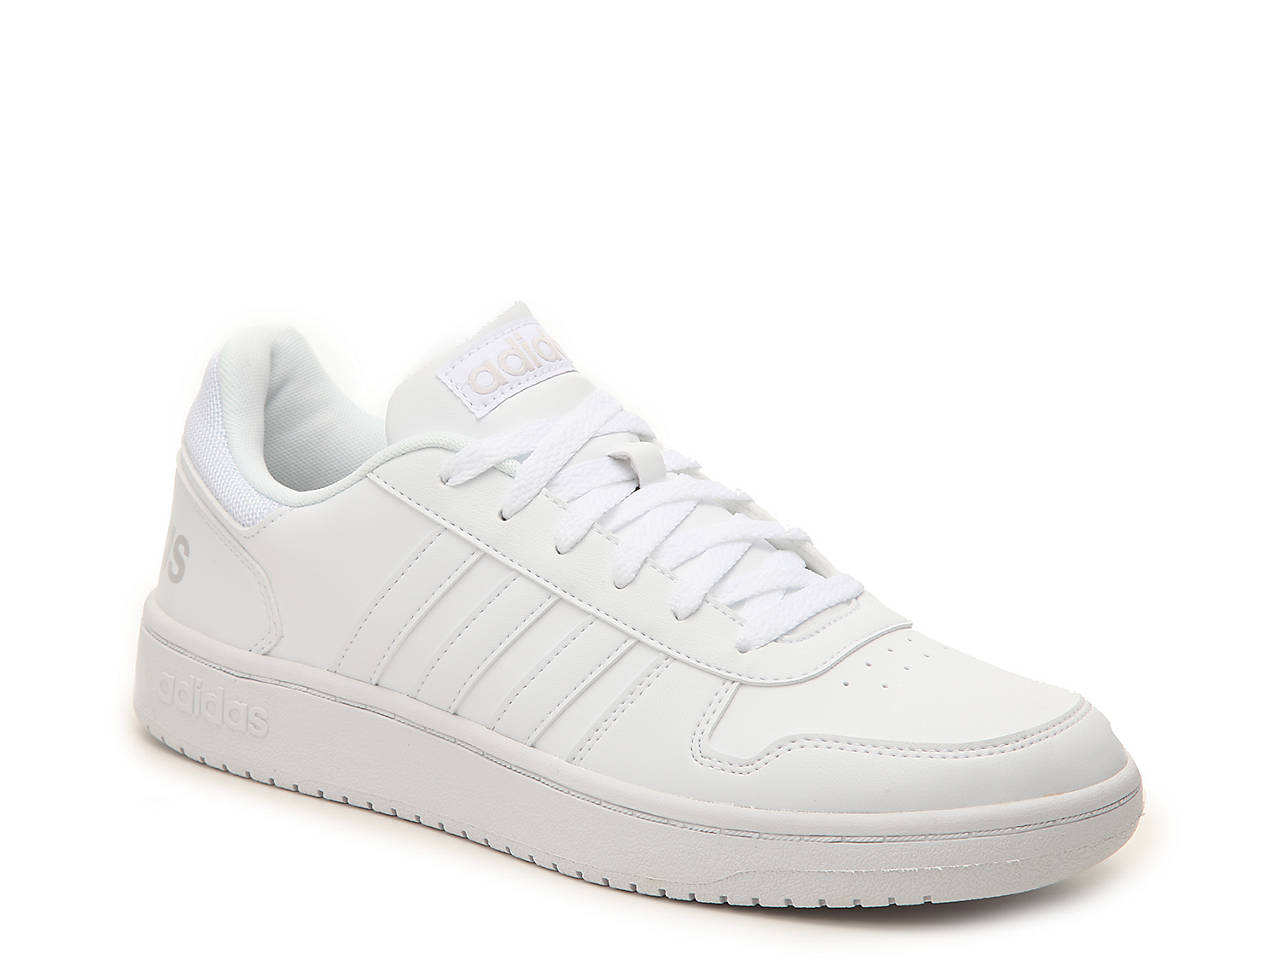 cc9a33b1600 adidas Hoops 2.0 Sneaker - Men's Men's Shoes | DSW